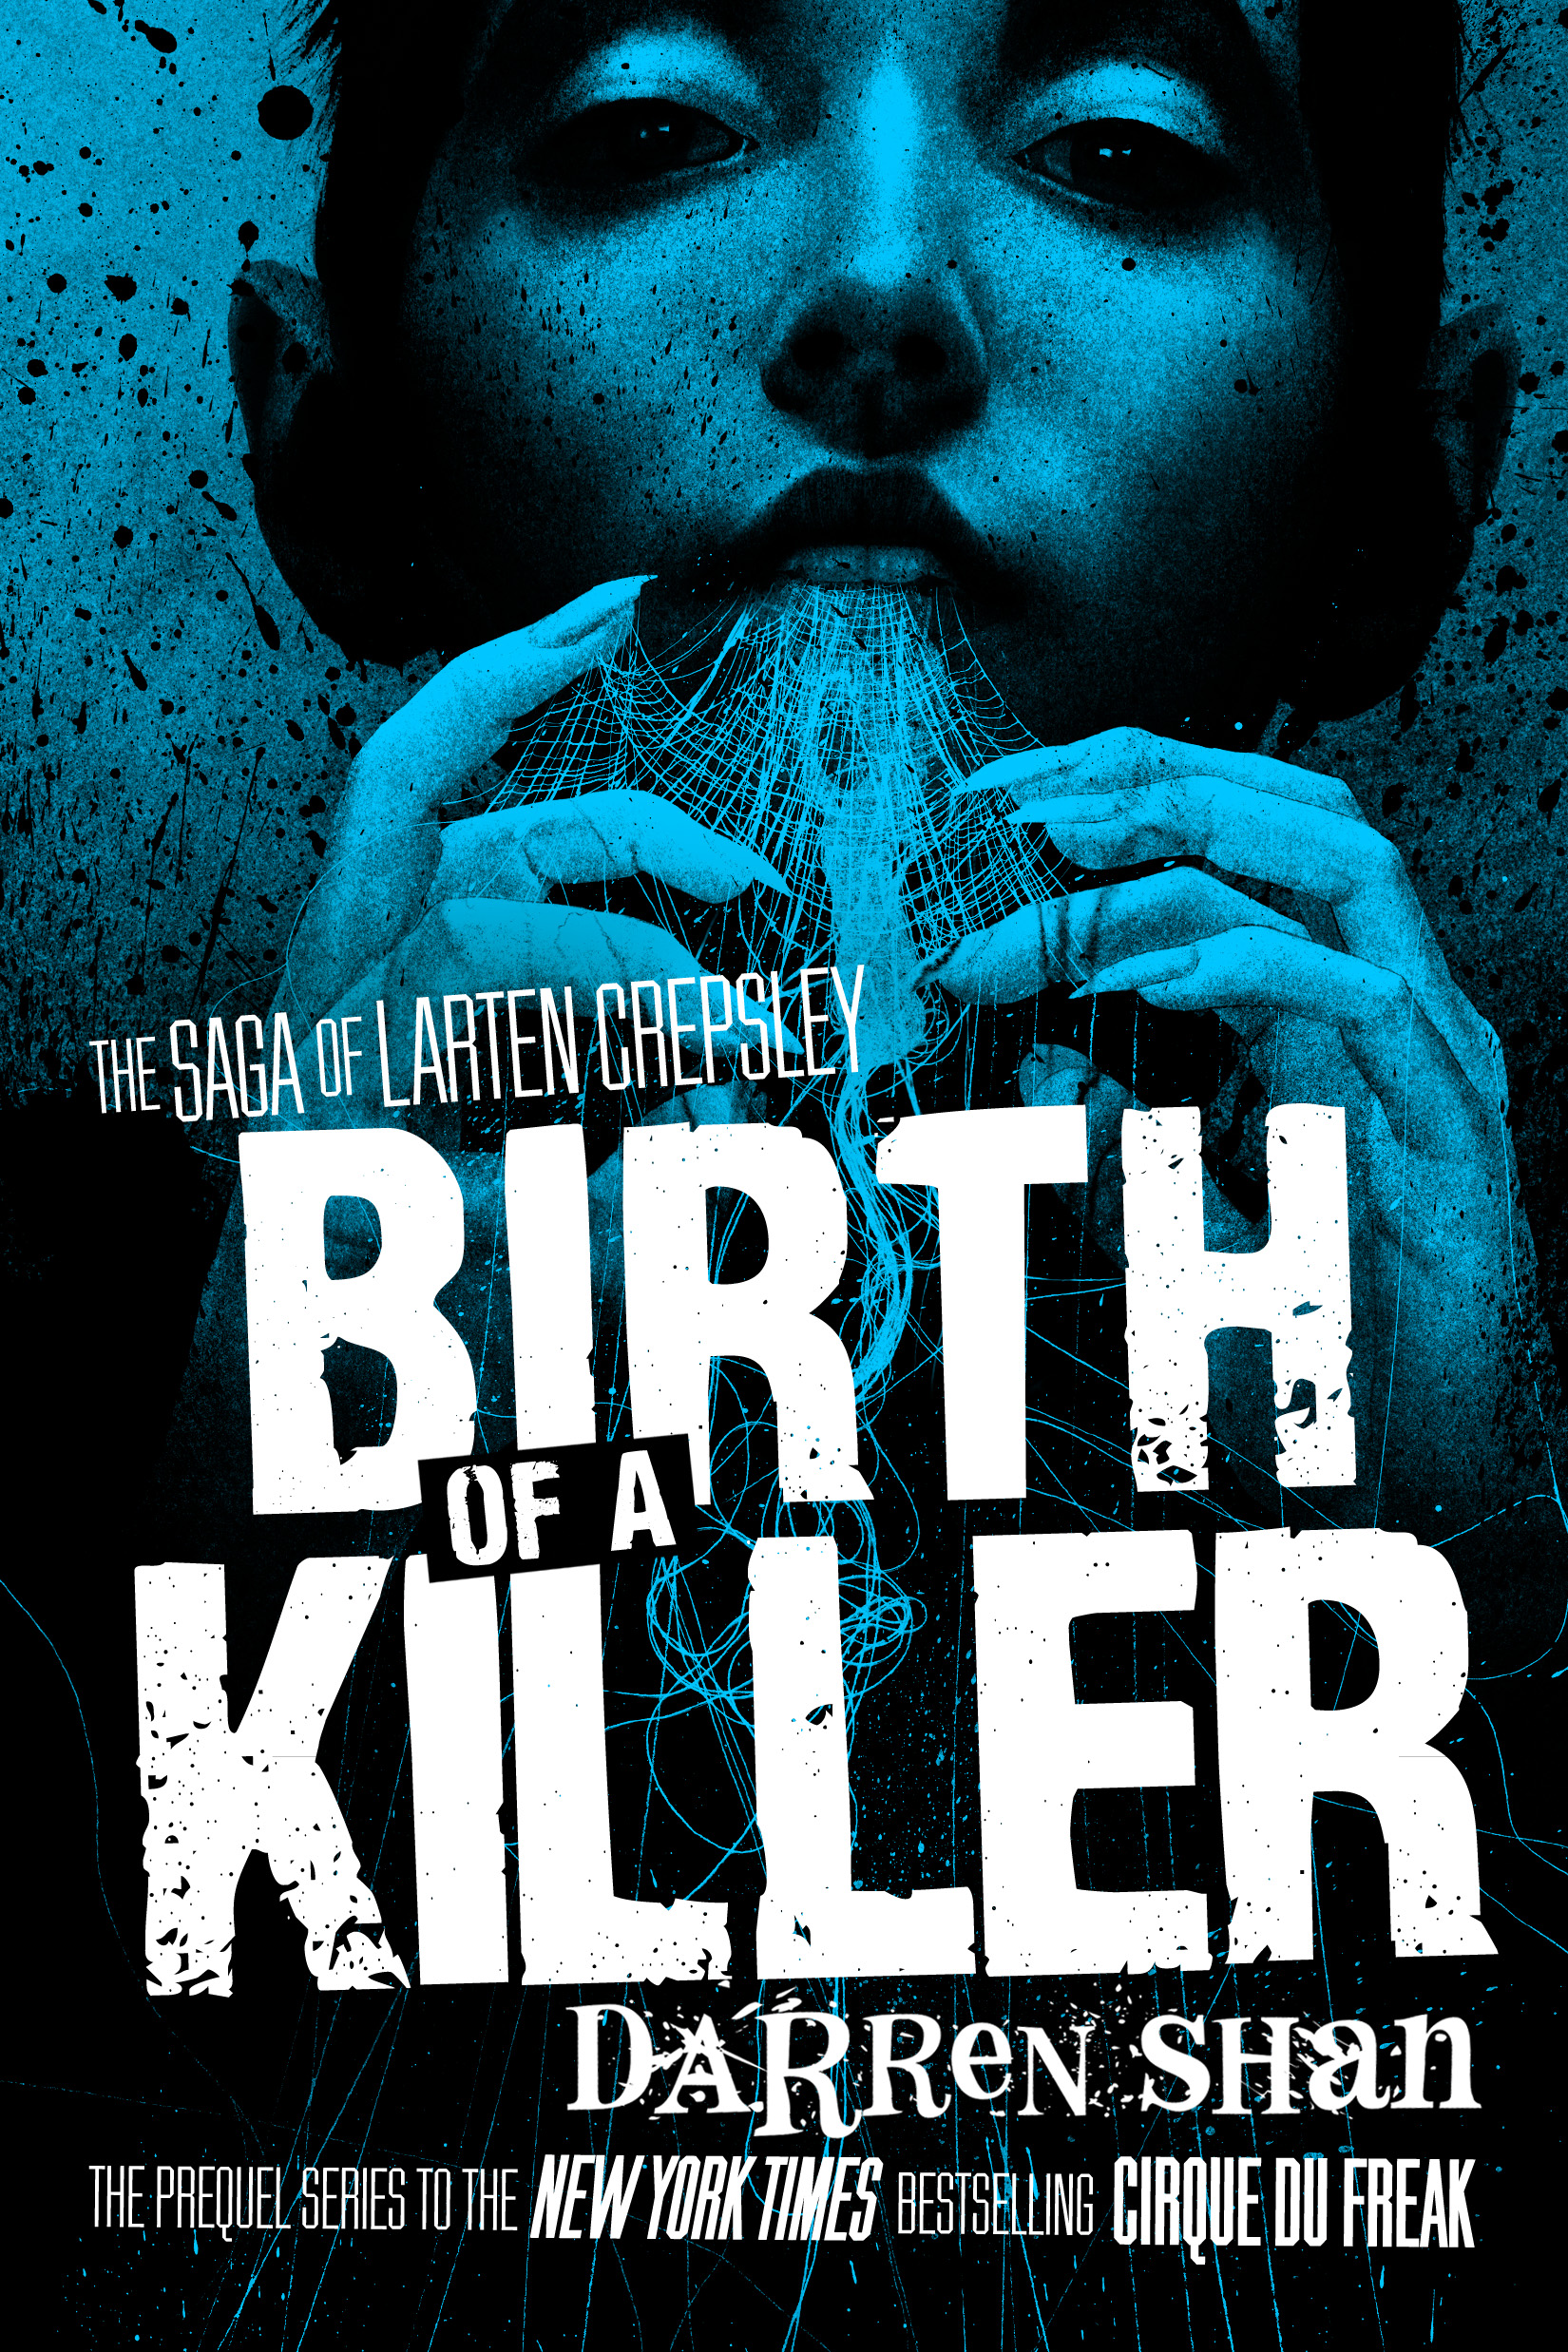 The Saga of Larten Crepsley: Birth of a Killer Paperback by Darren Shan Designed by Ben Mautner for Little, Brown Illustrated by Sam Weber